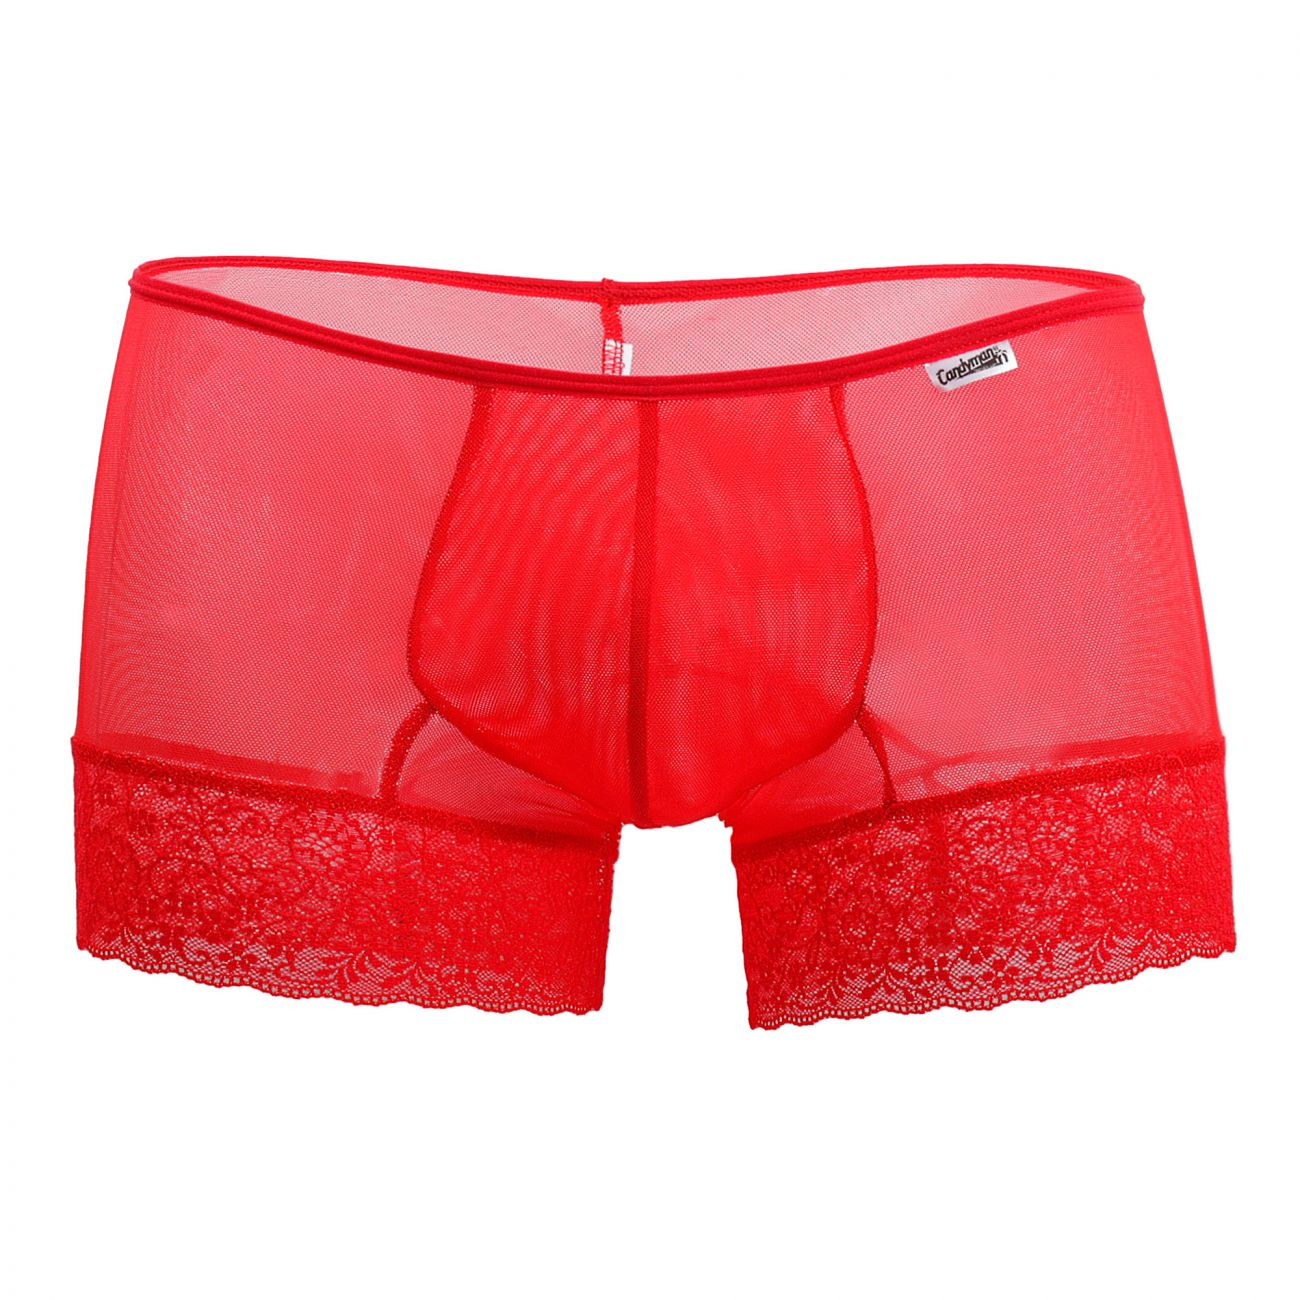 CandyMan 99407 Lace Trunks Color Red